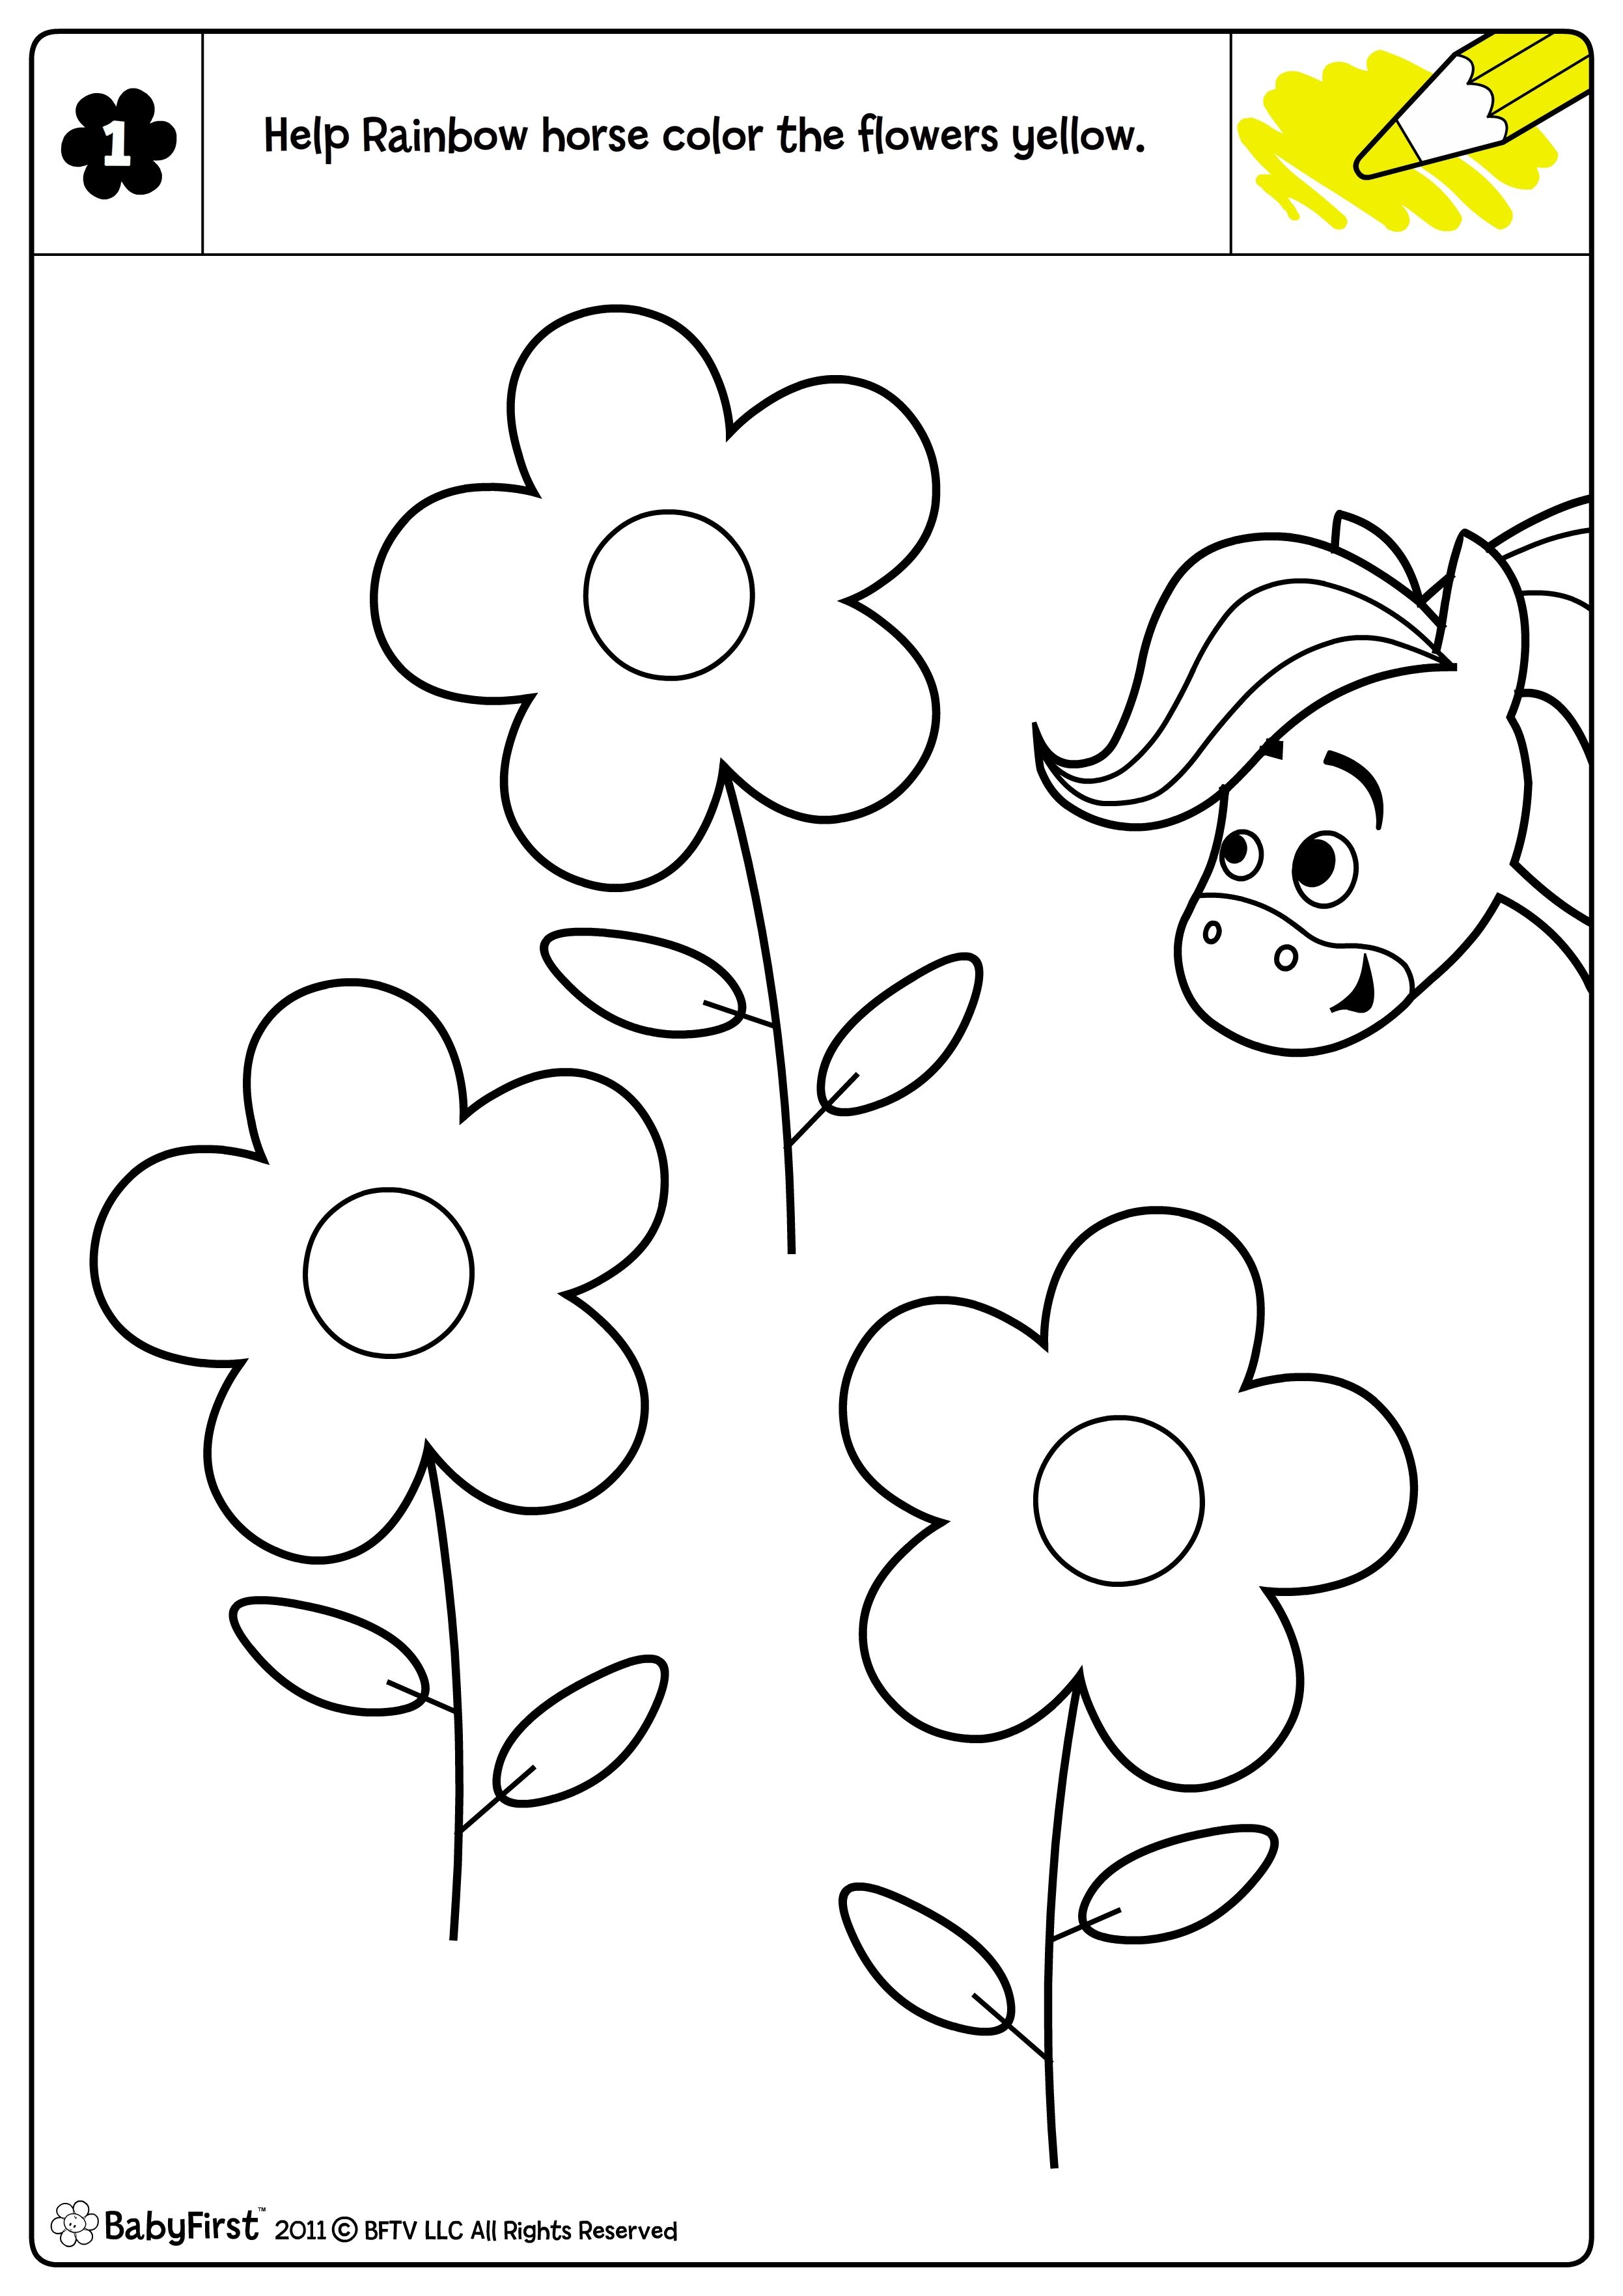 Rainbow Horse Coloring Pages Blue Orange And Brown Horse Coloring Pages Horse Coloring Coloring Pages